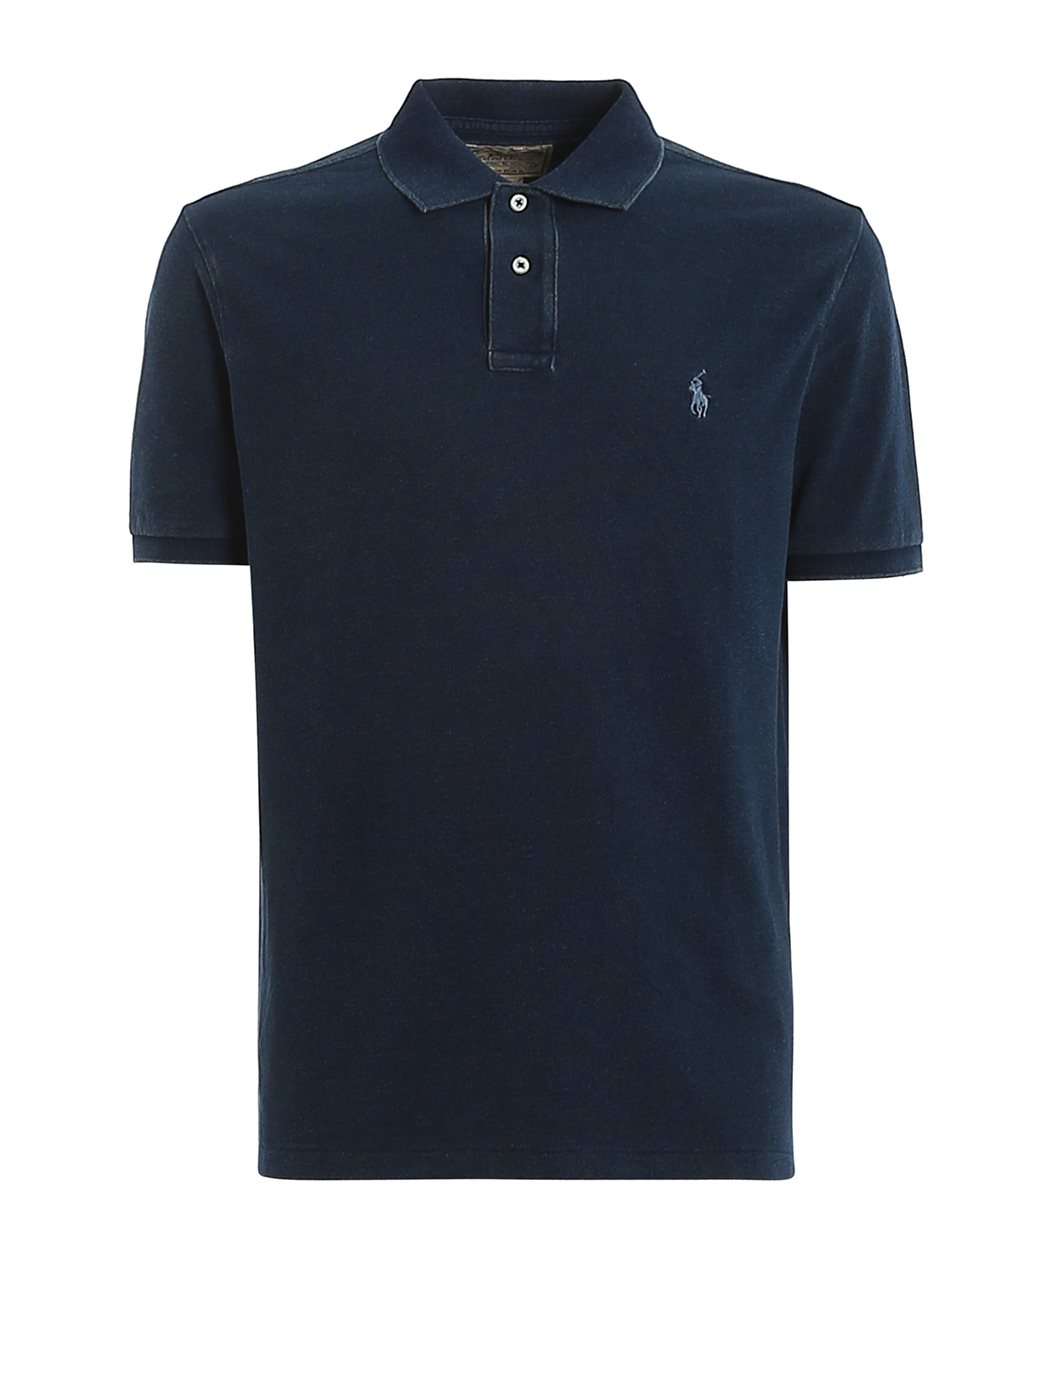 POLO RALPH LAUREN UOMO 71079 007 POLO